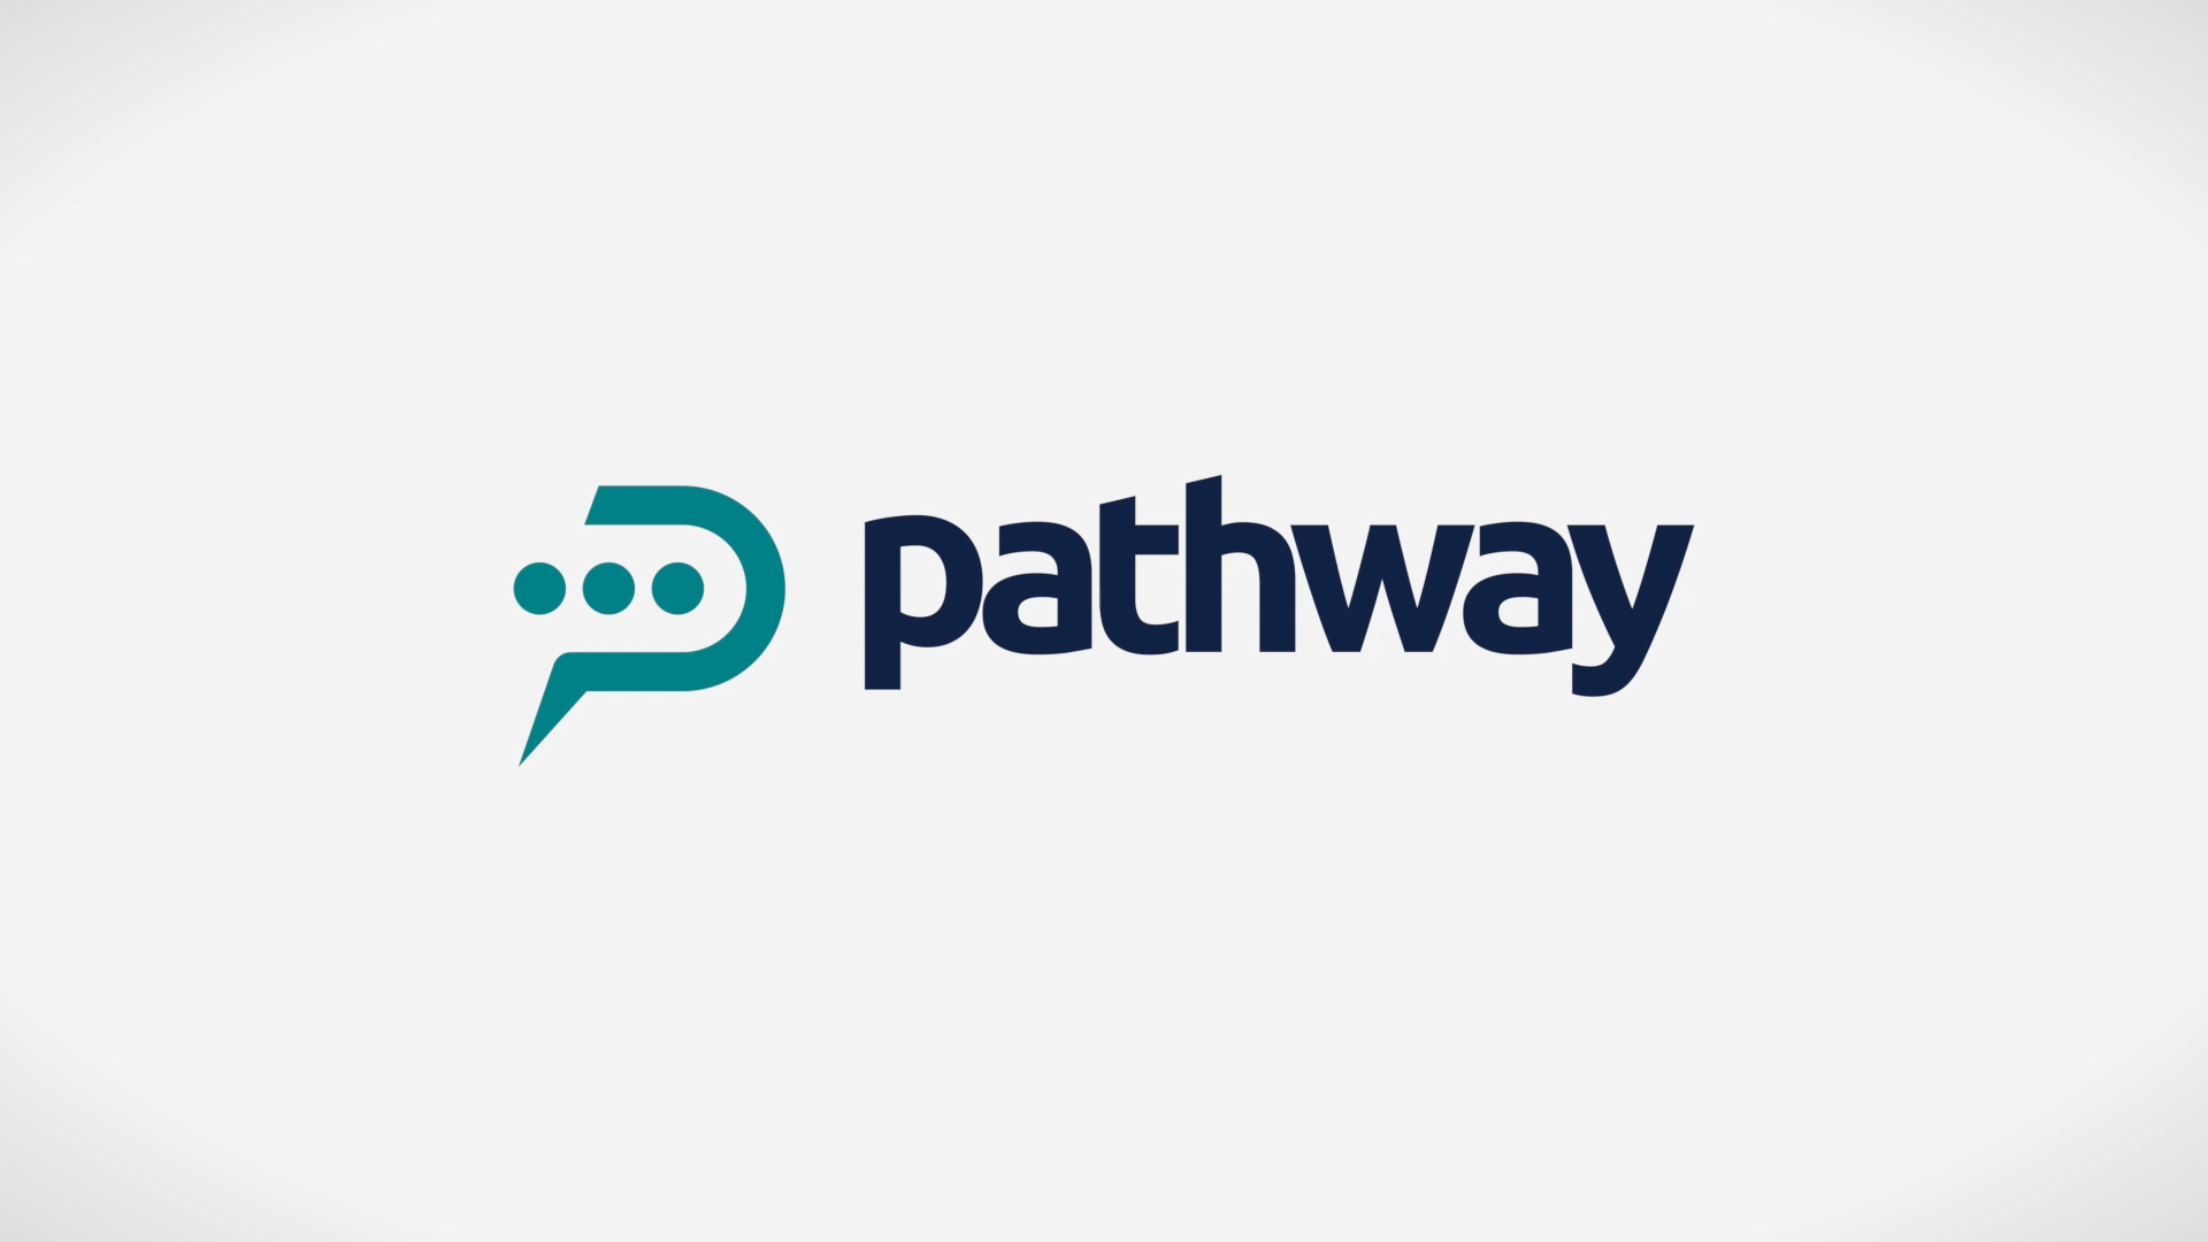 Video thumbnail for PATHWAY WITH RAYNER AGENCIES